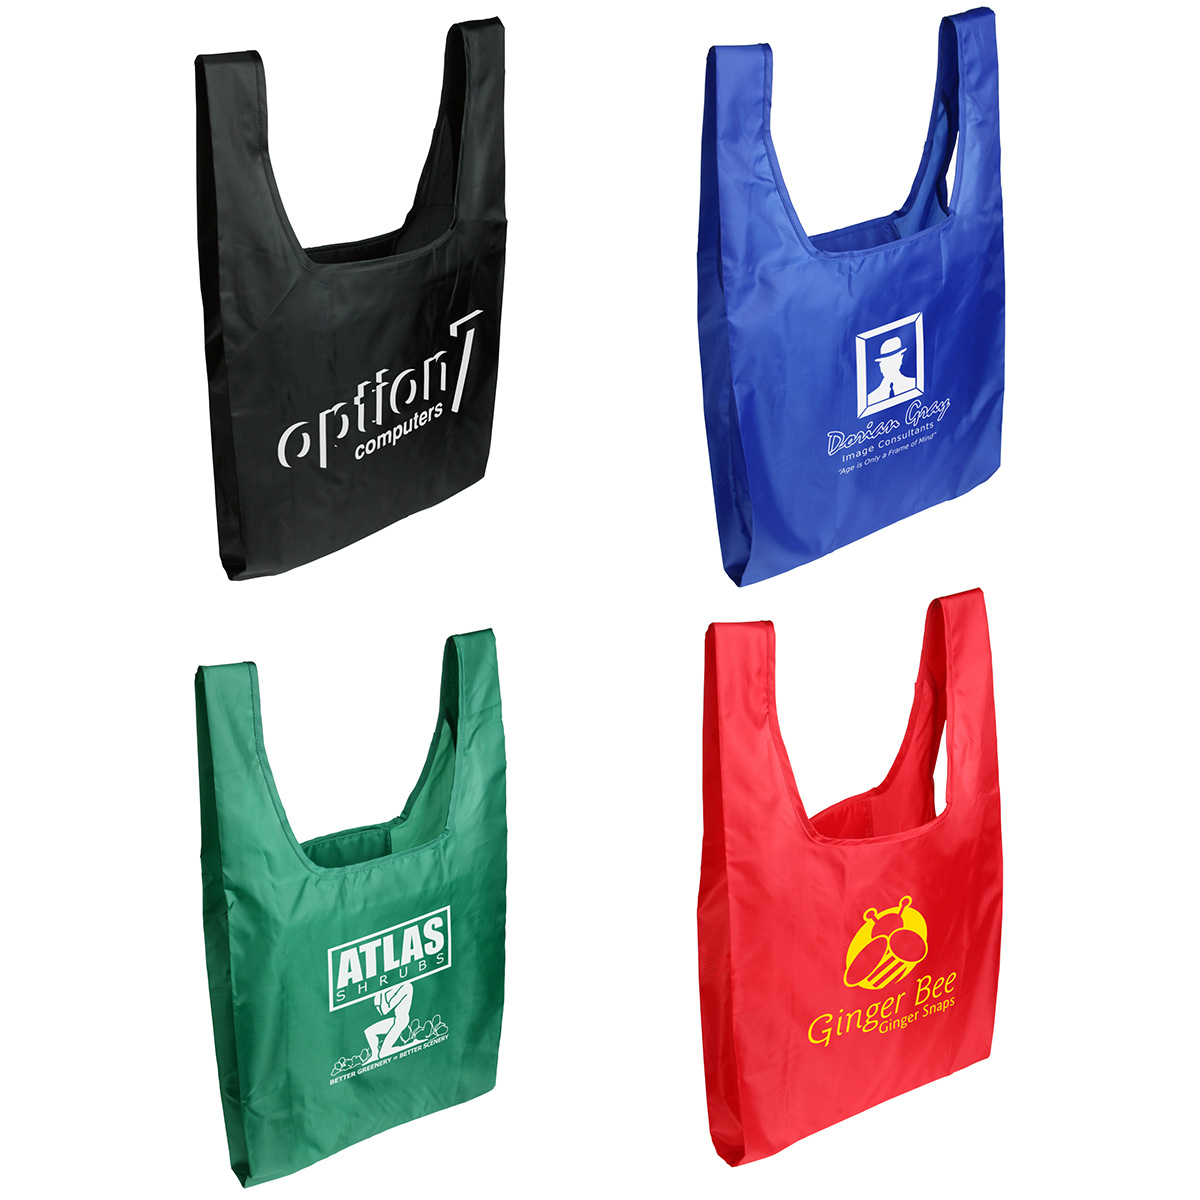 Tide Twister Folding Tote Bag, WBA-TT10 - 1 Colour Imprint